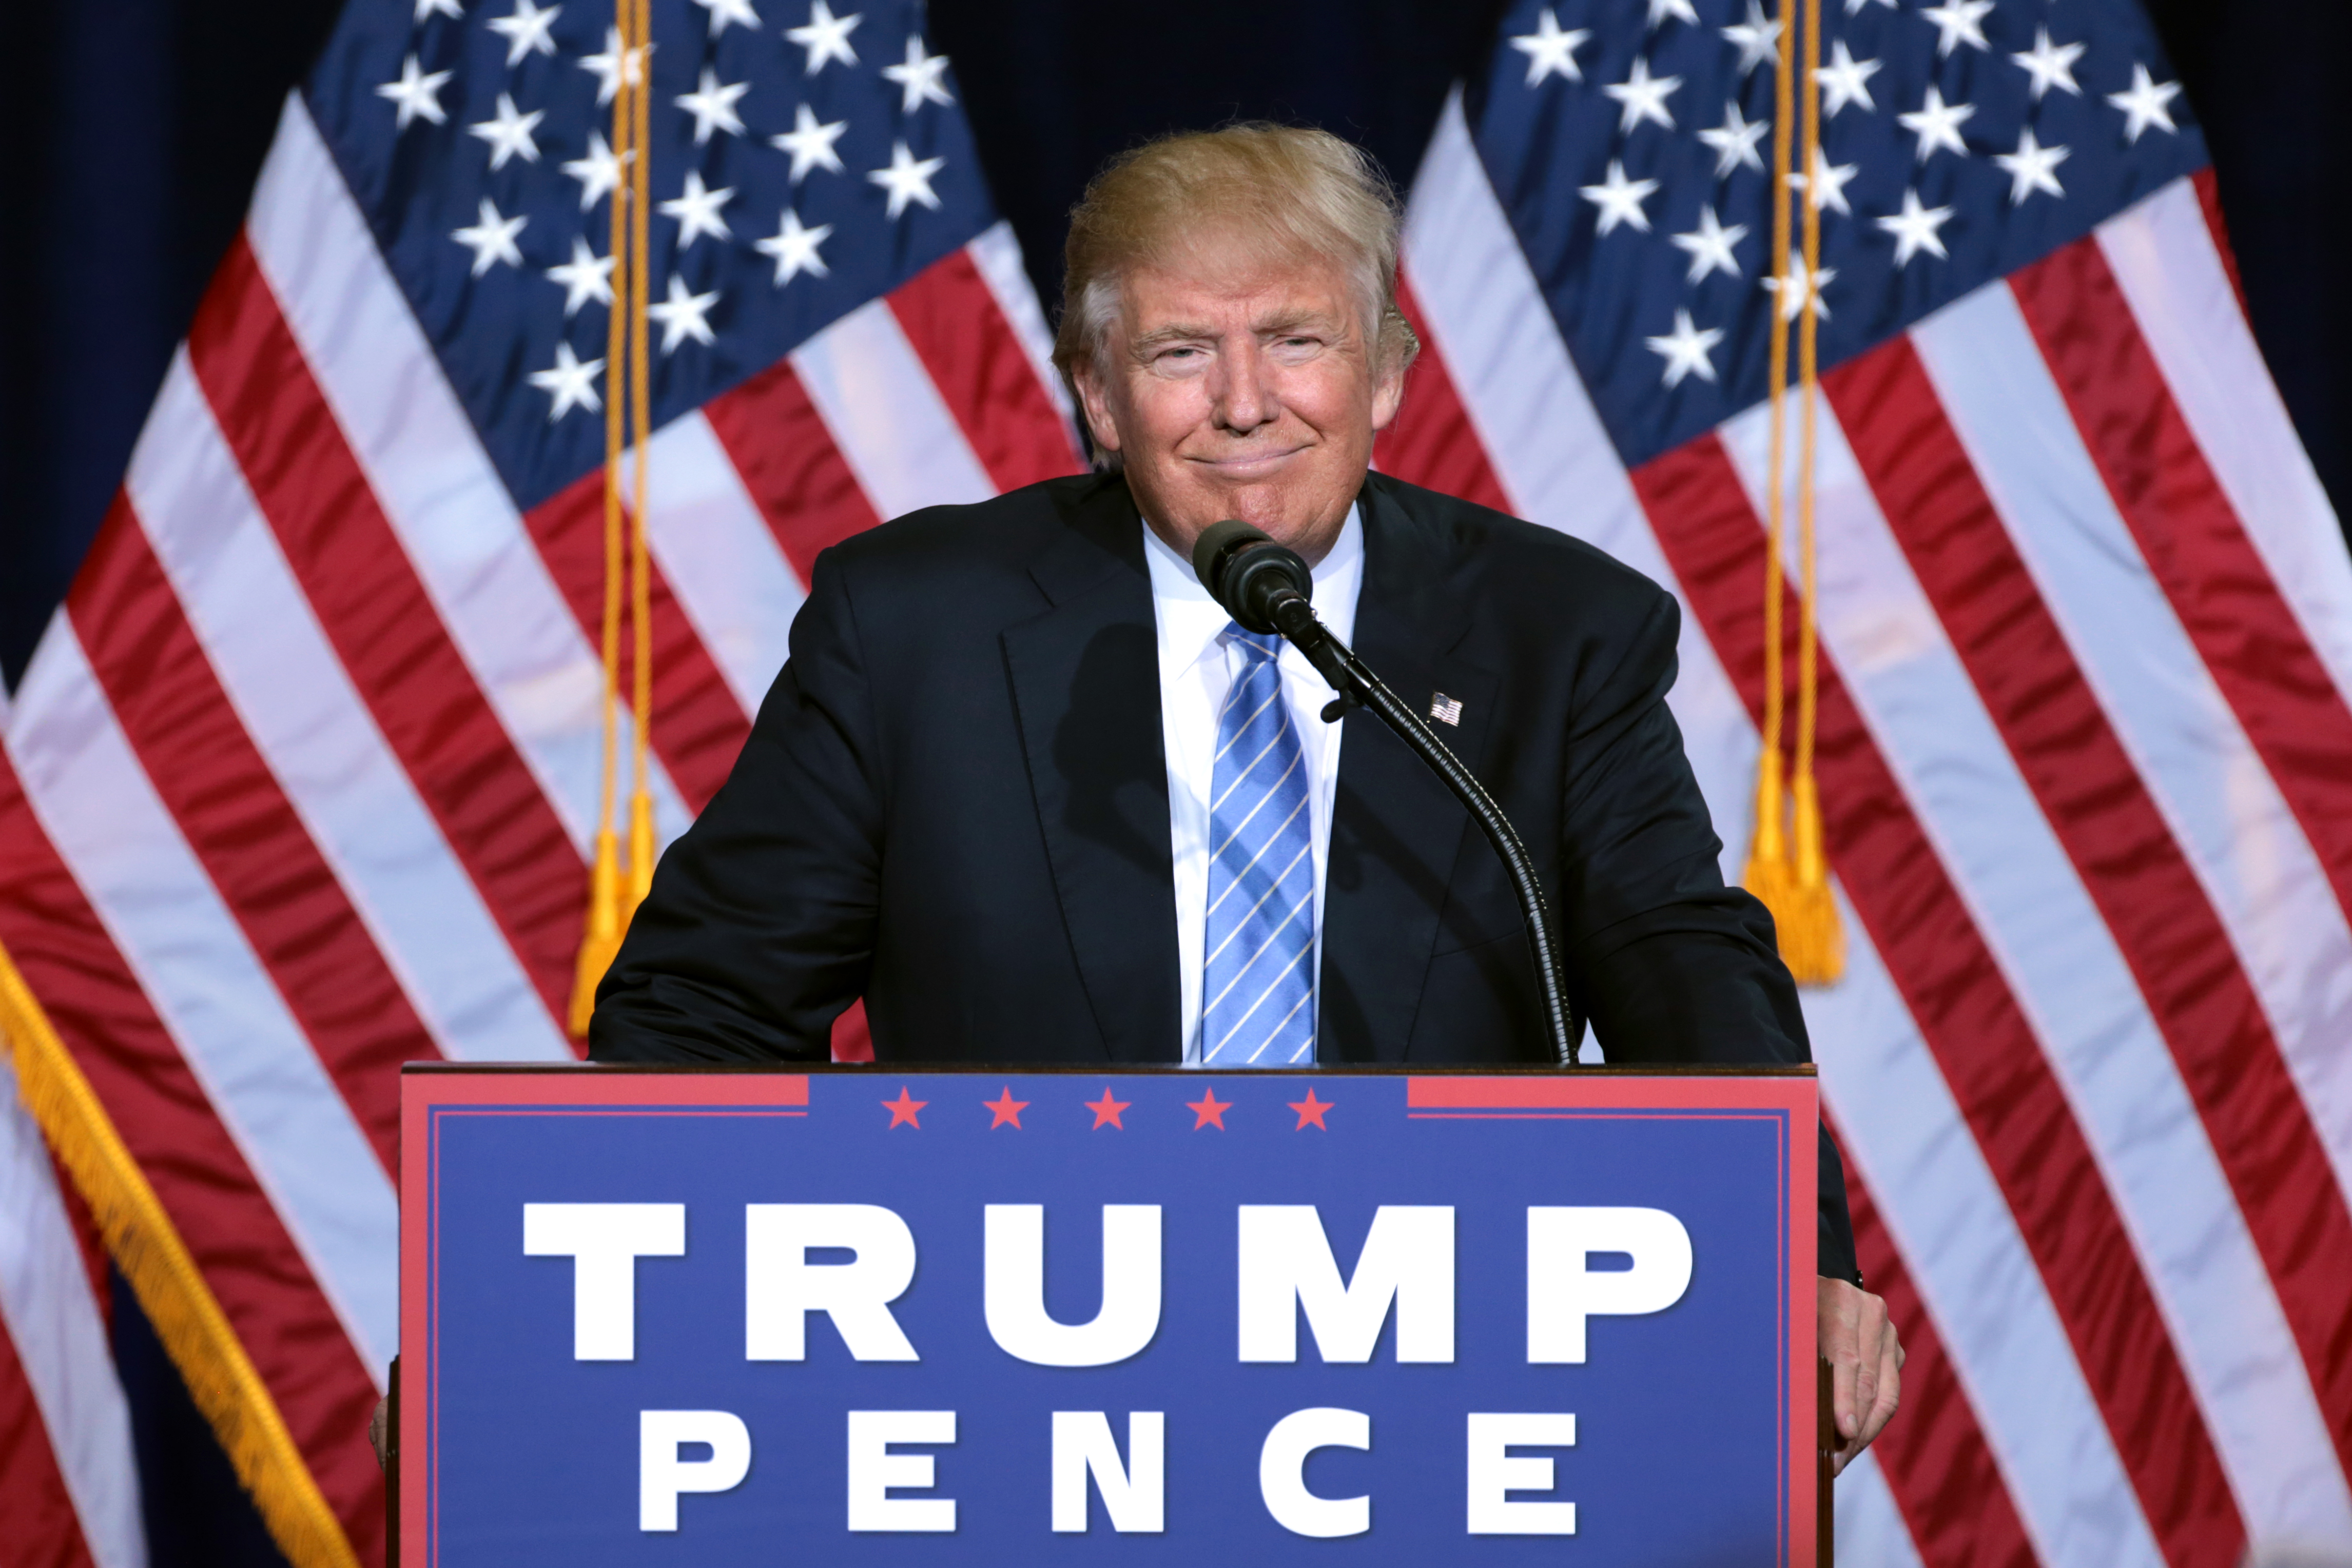 Donald Trump speaking at a campaign rally, flags in the background.